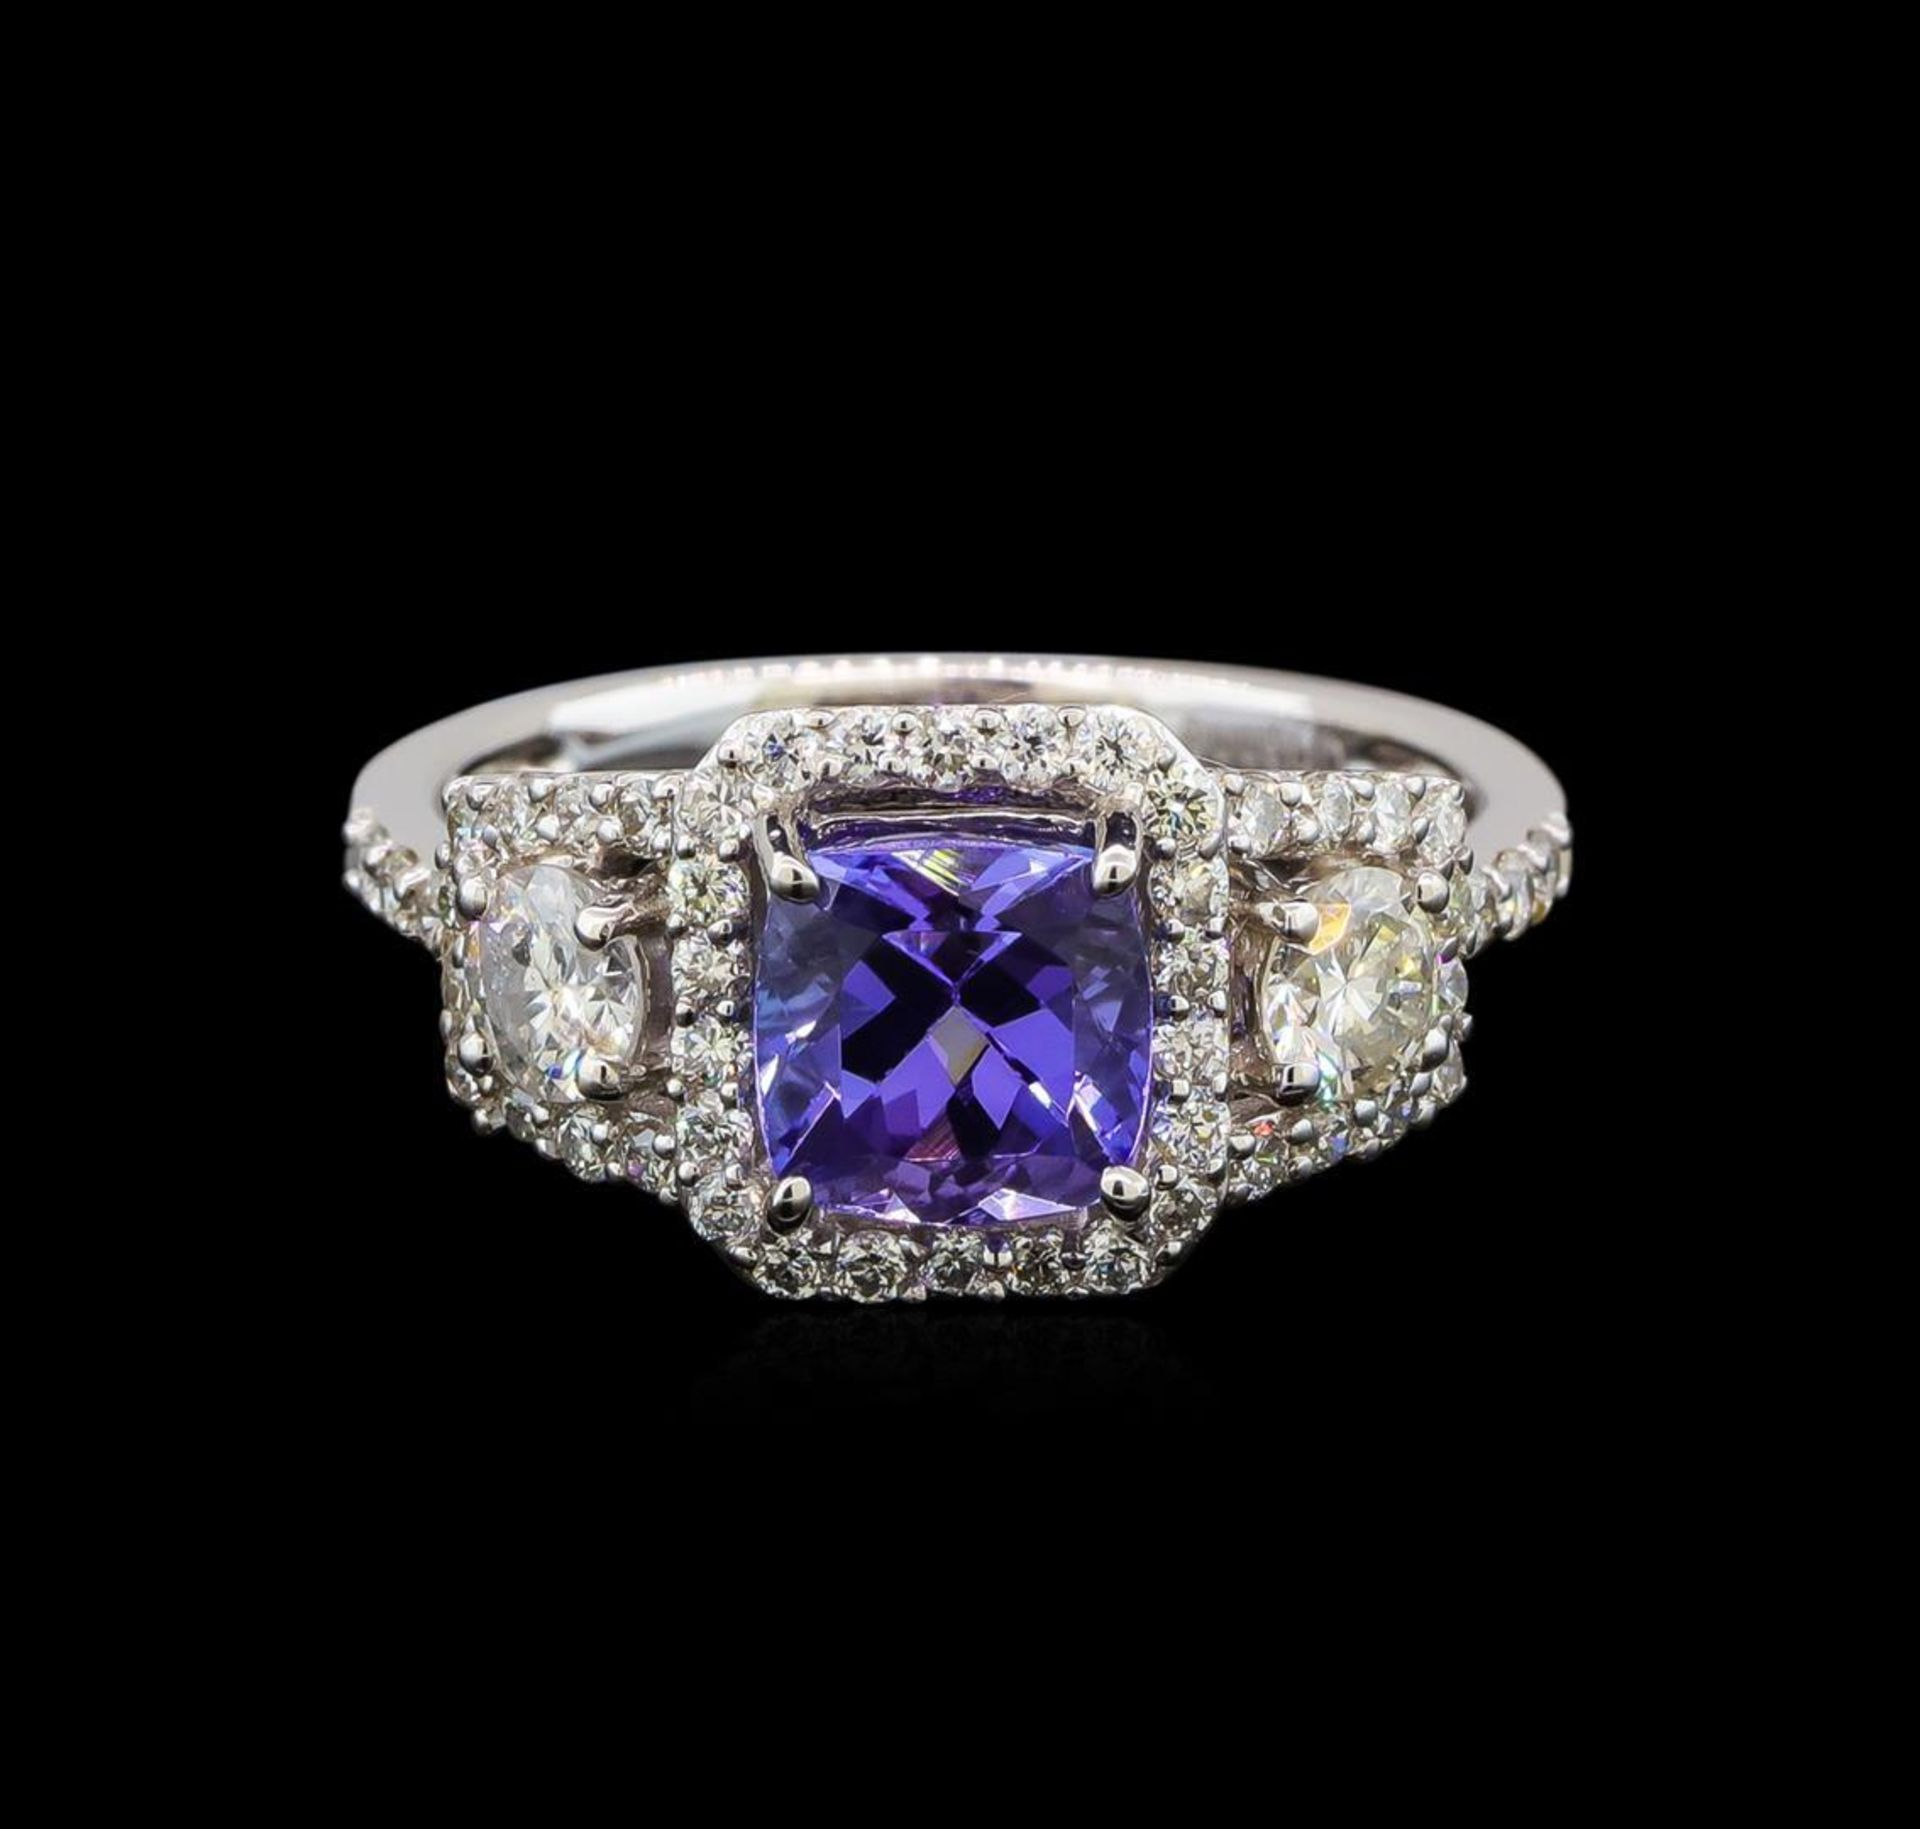 18KT White Gold 1.41 ctw Tanzanite and Diamond Ring - Image 2 of 5